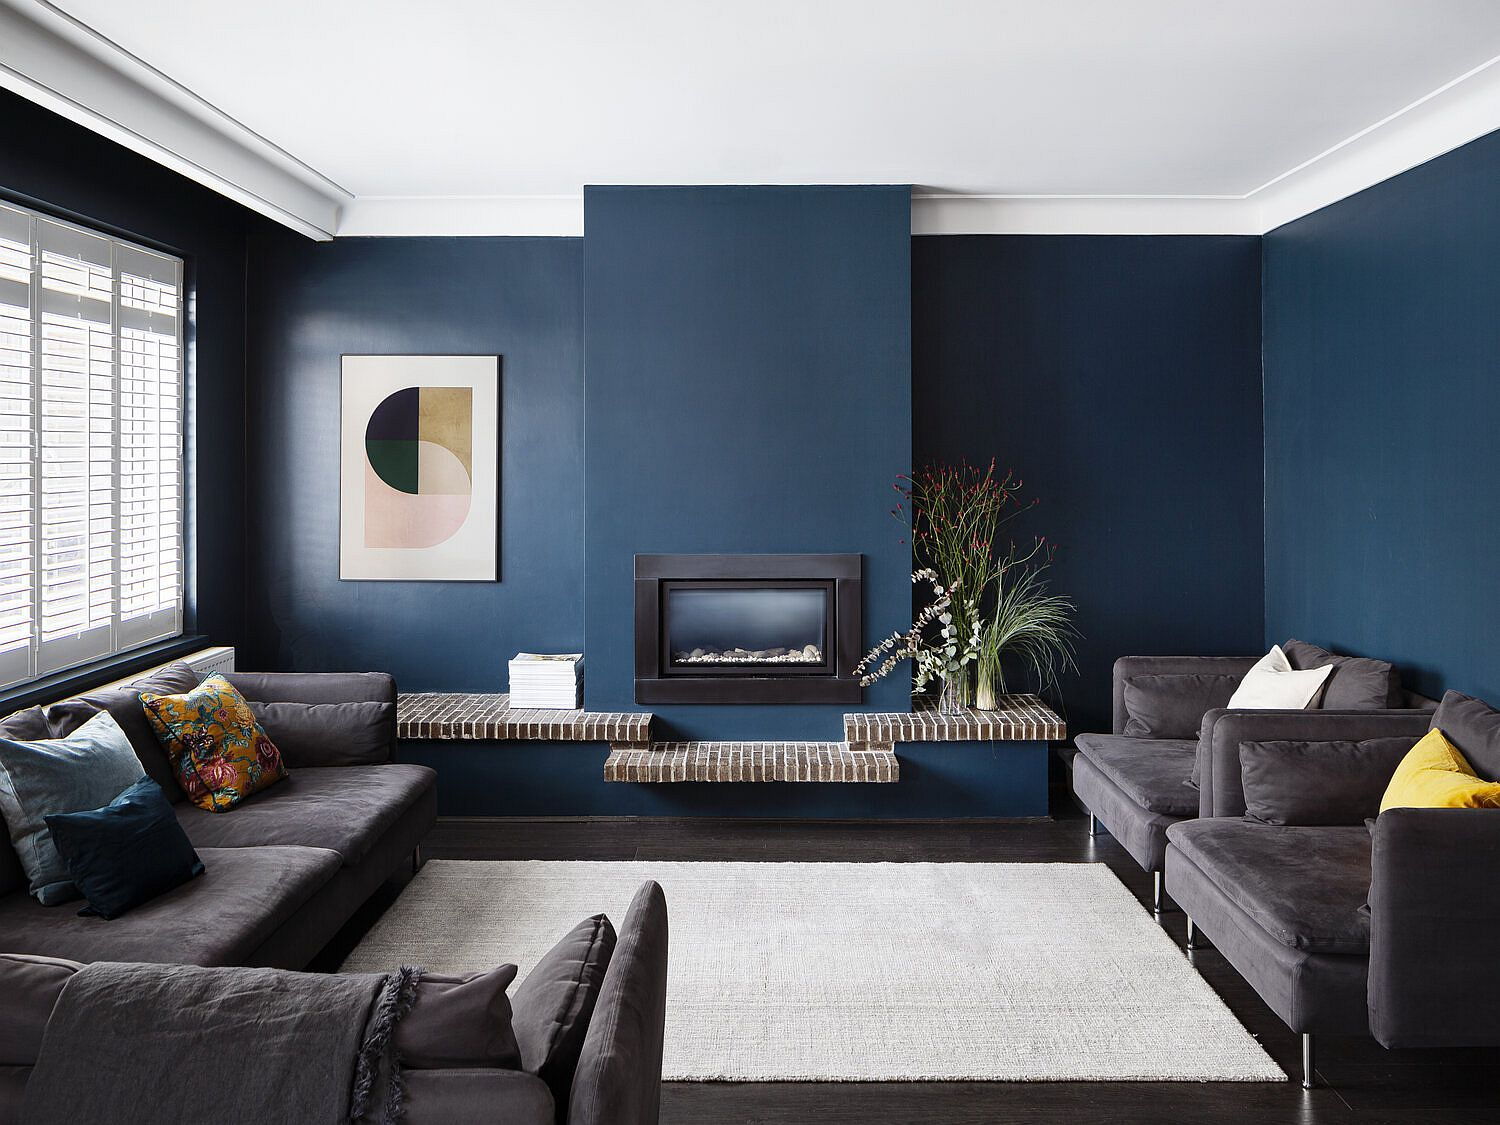 Fabulous dark blue living area with comfortable dark gray sofas and a small fireplace